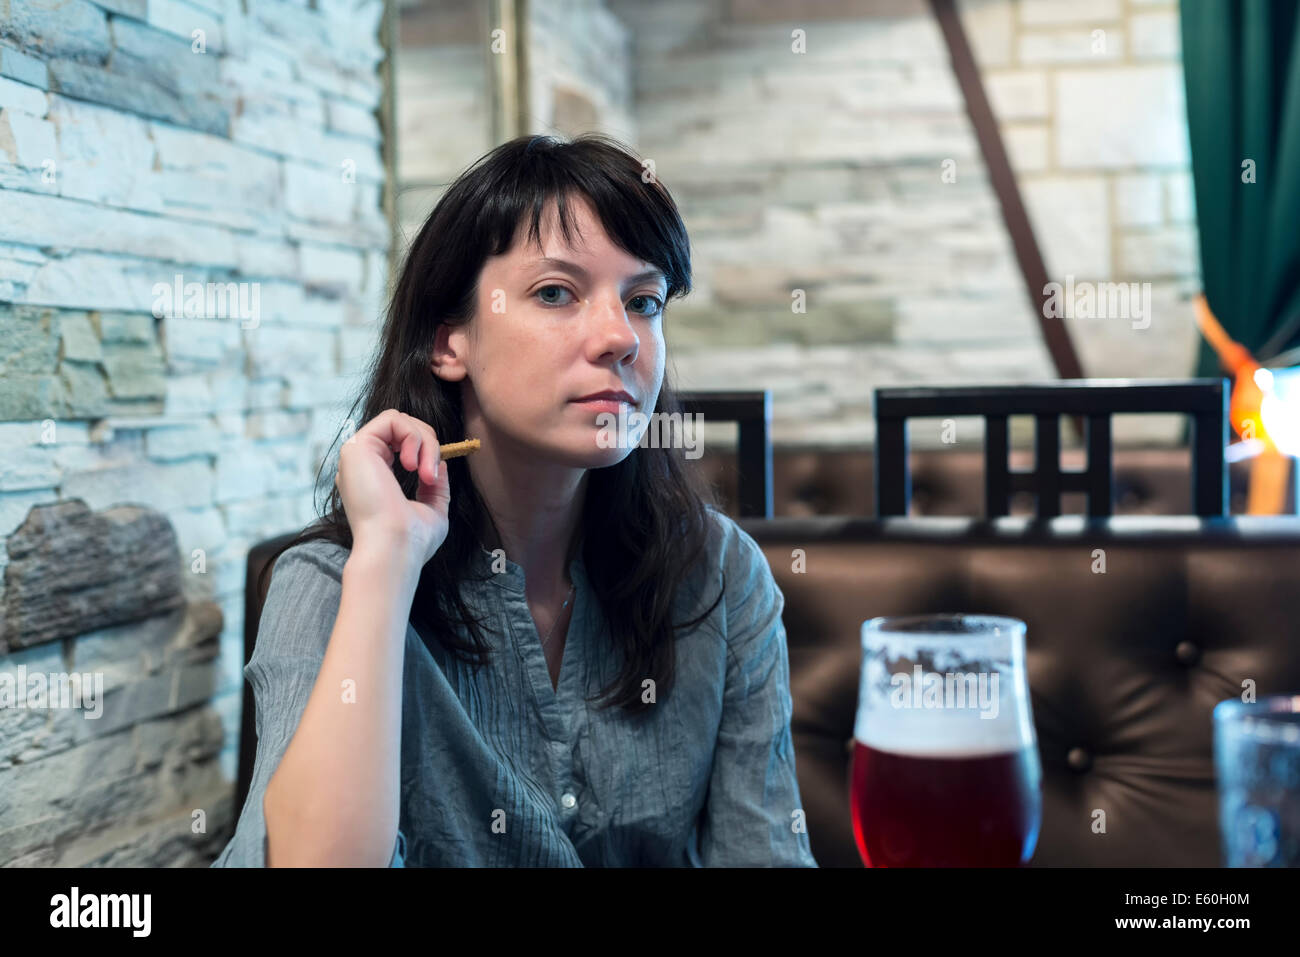 girl sitting at the bar with a glass of cherry beer - Stock Image